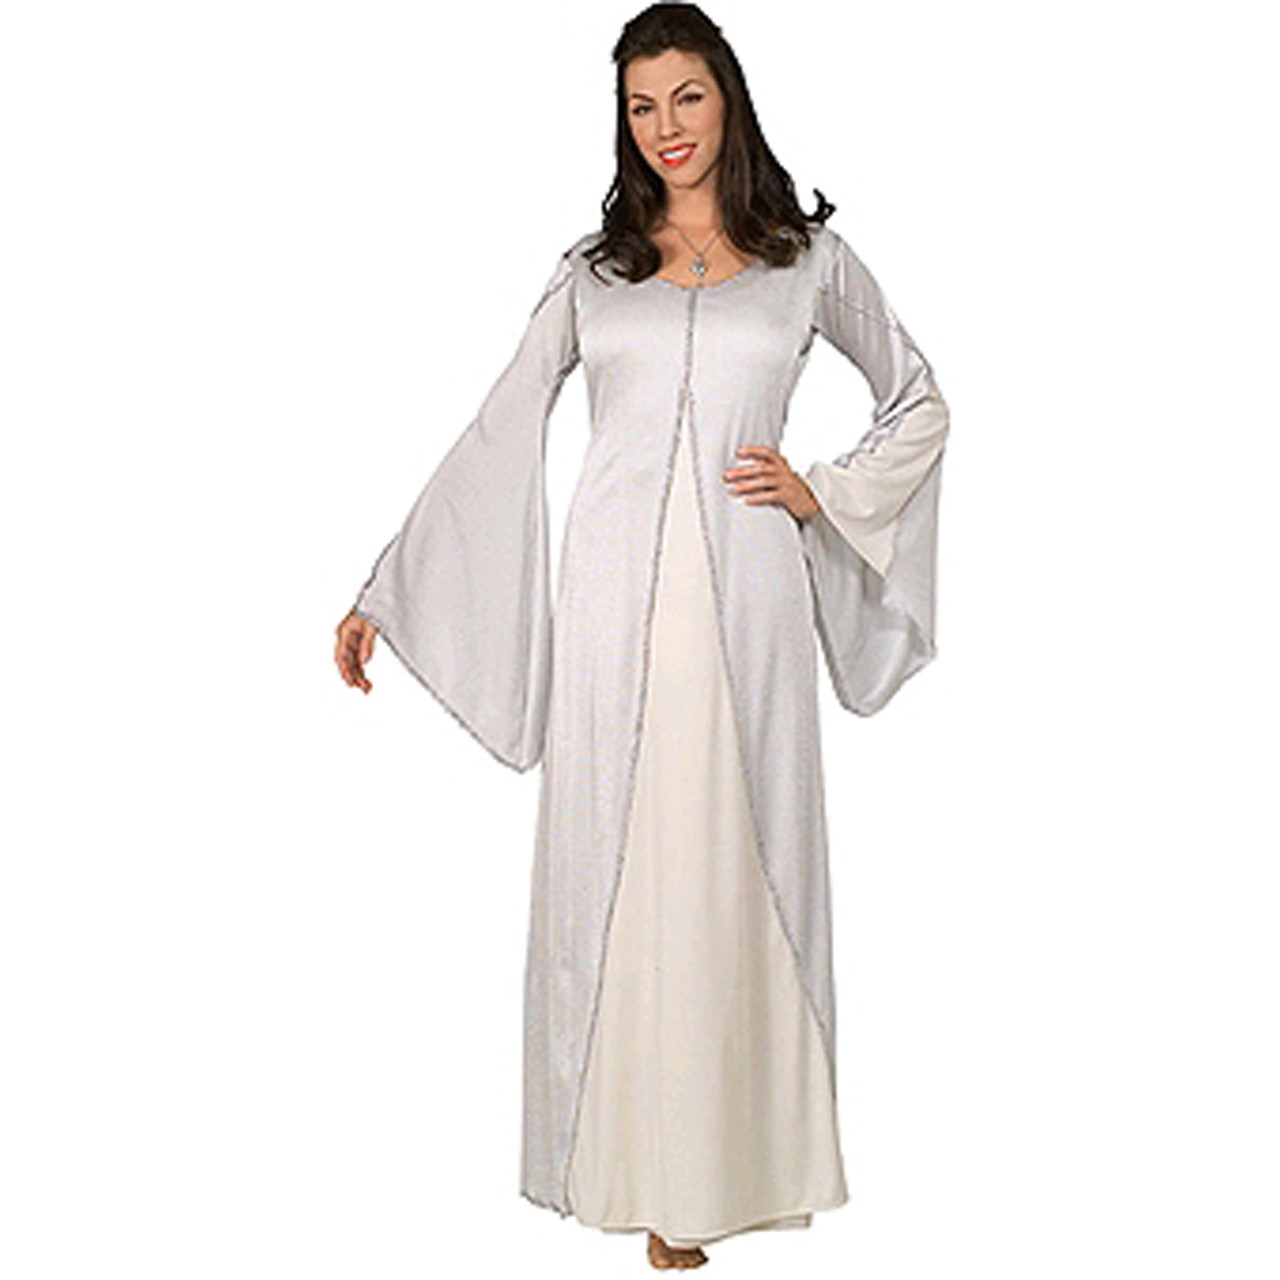 Lord of the Rings - Arwen Womens Costume